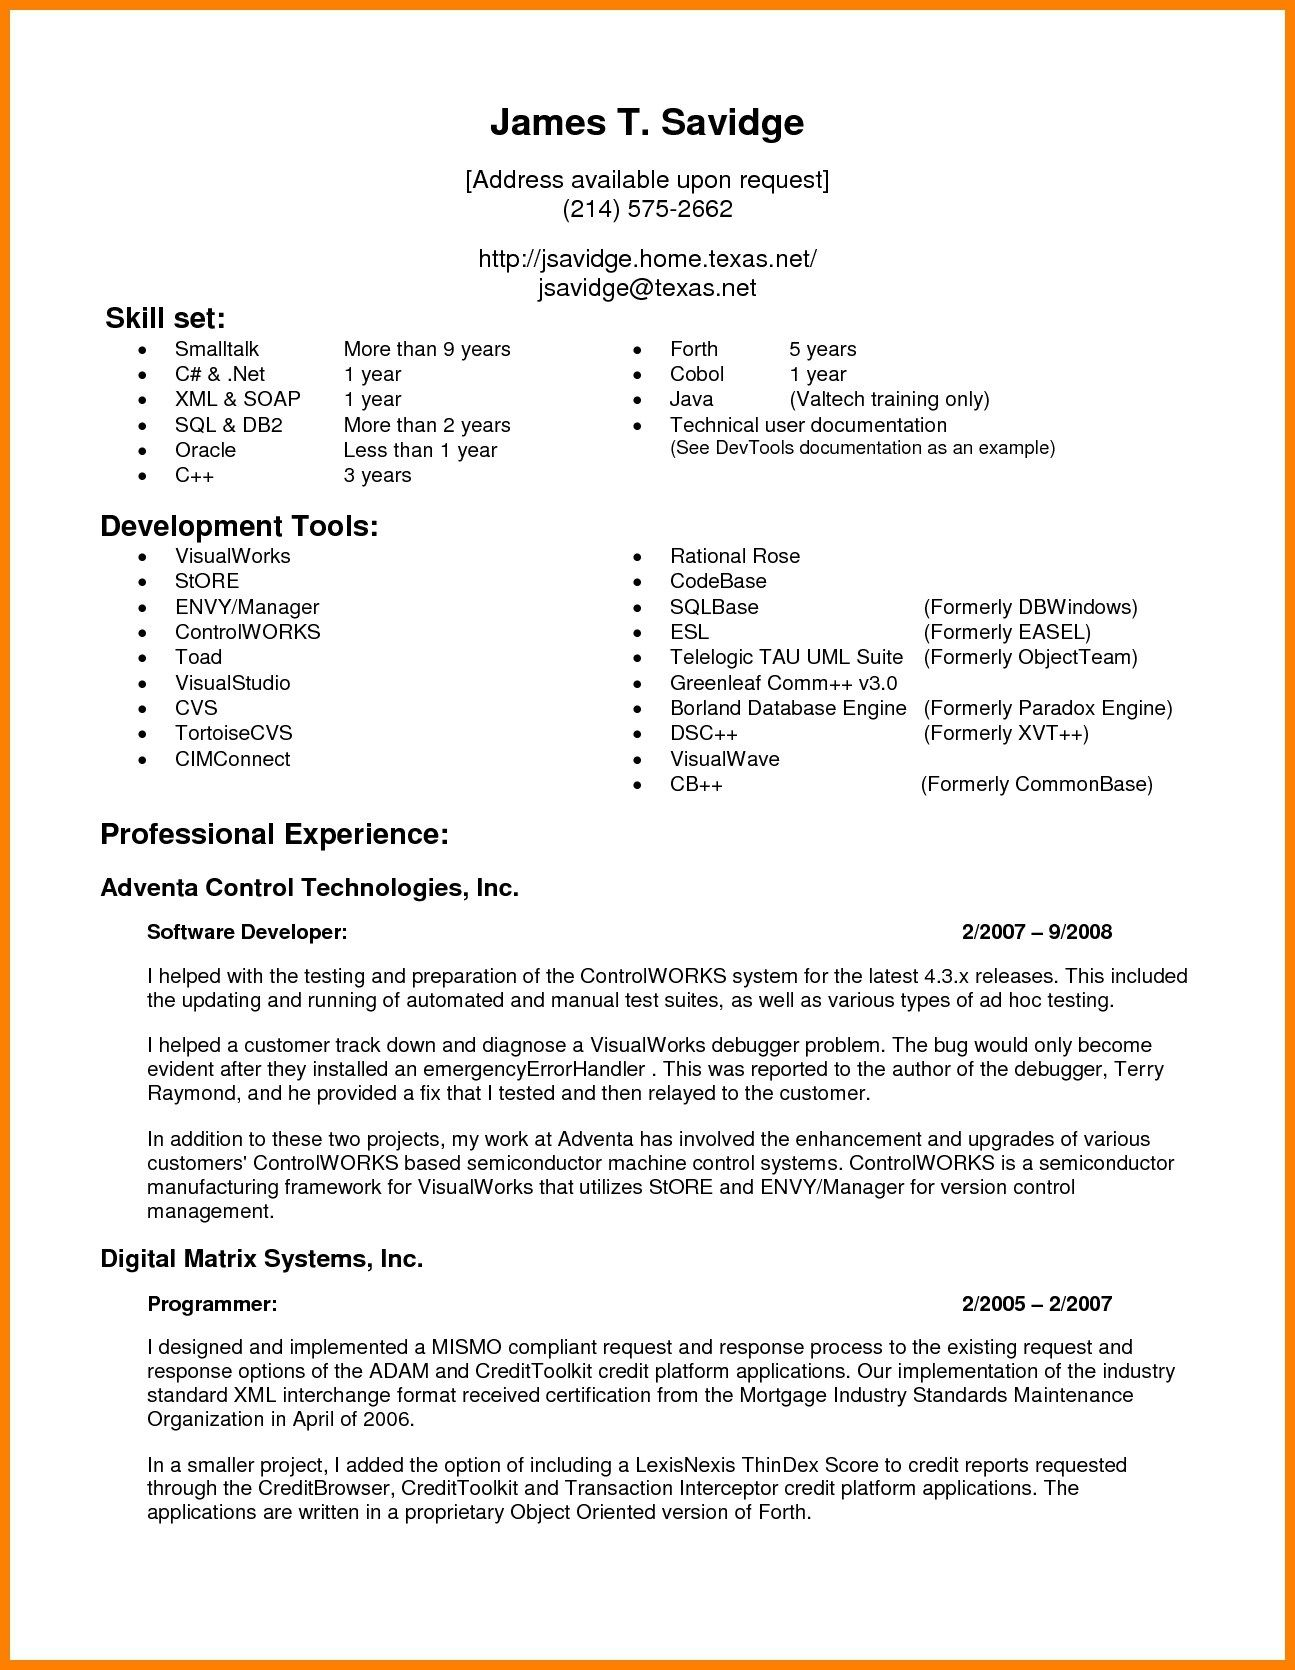 Only resume format thesis dorian gray